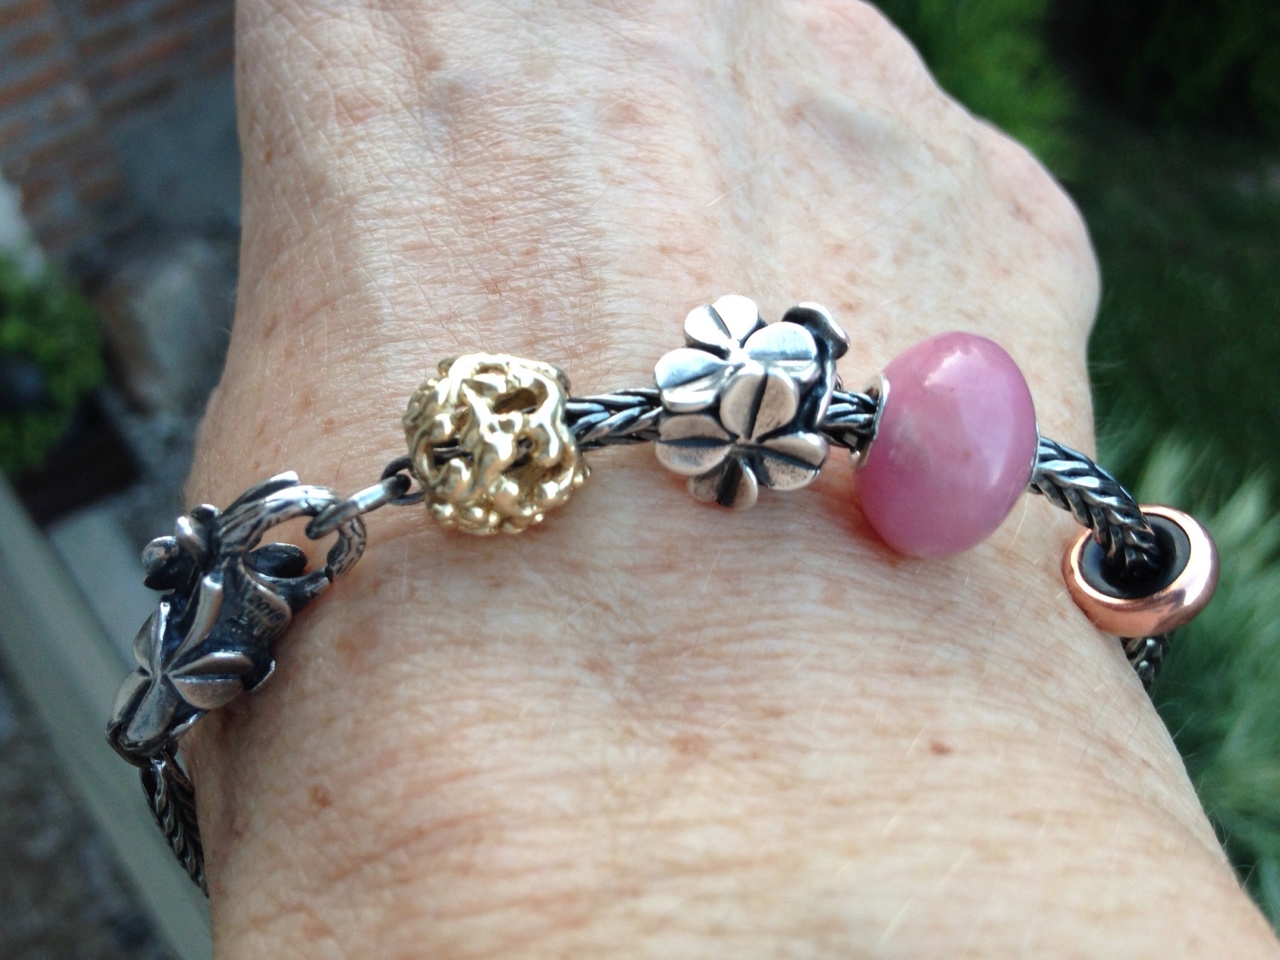 Show Your 40th Clover Bracelets - Page 2 Freund10